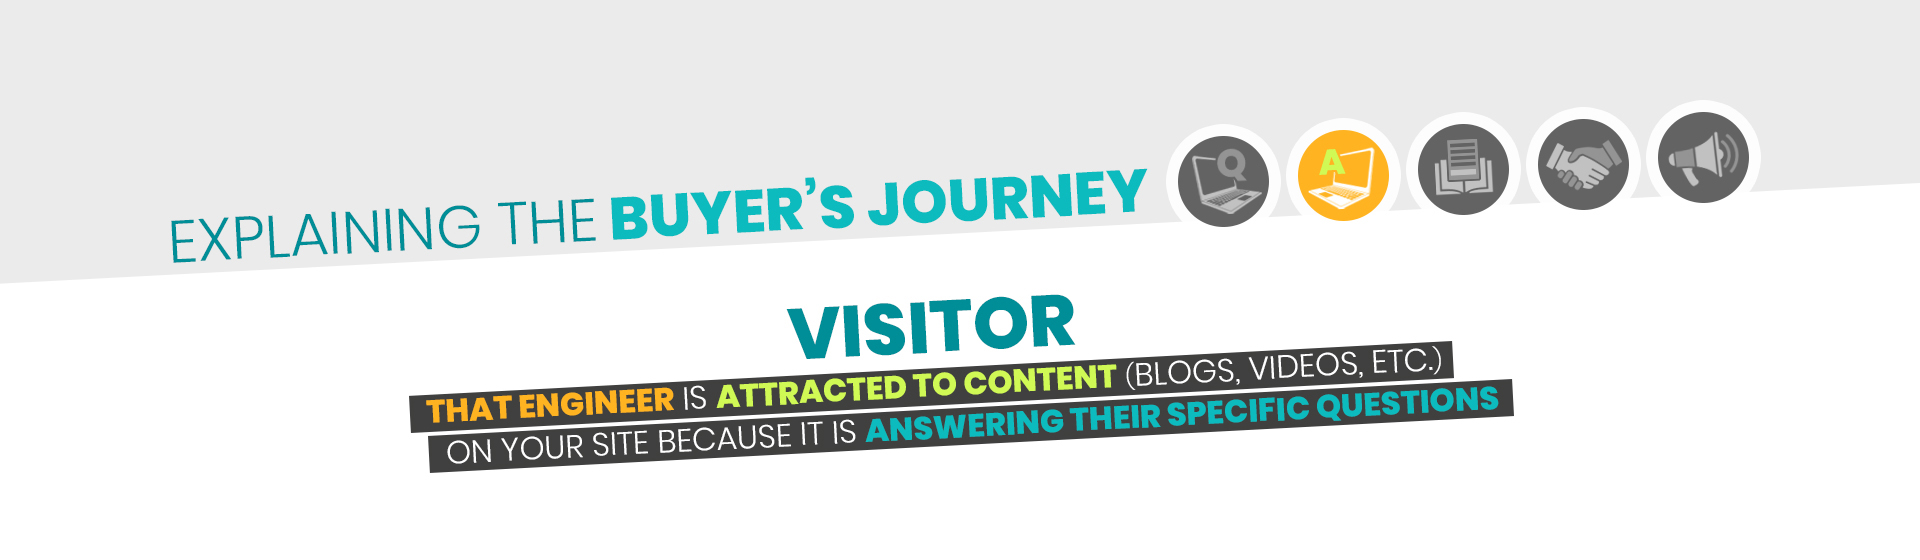 Buyers Journey - Visitor-1